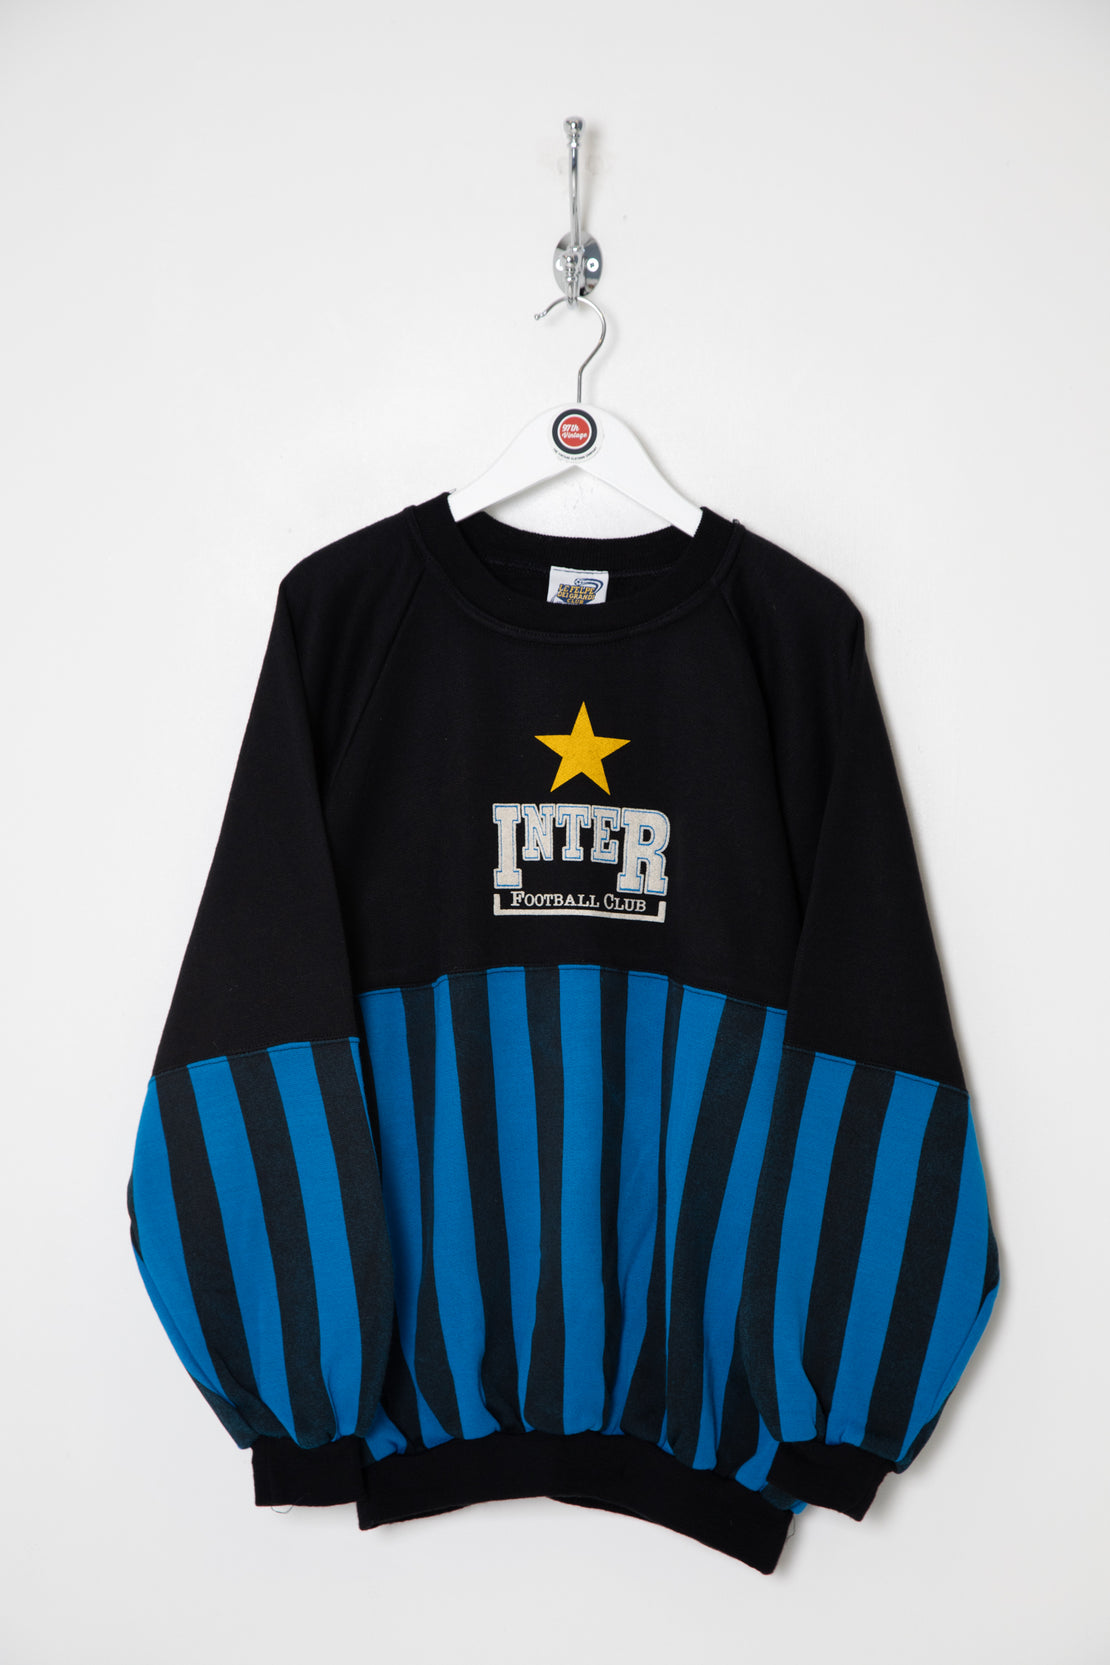 1992 Inter Milan Sweatshirt (L)